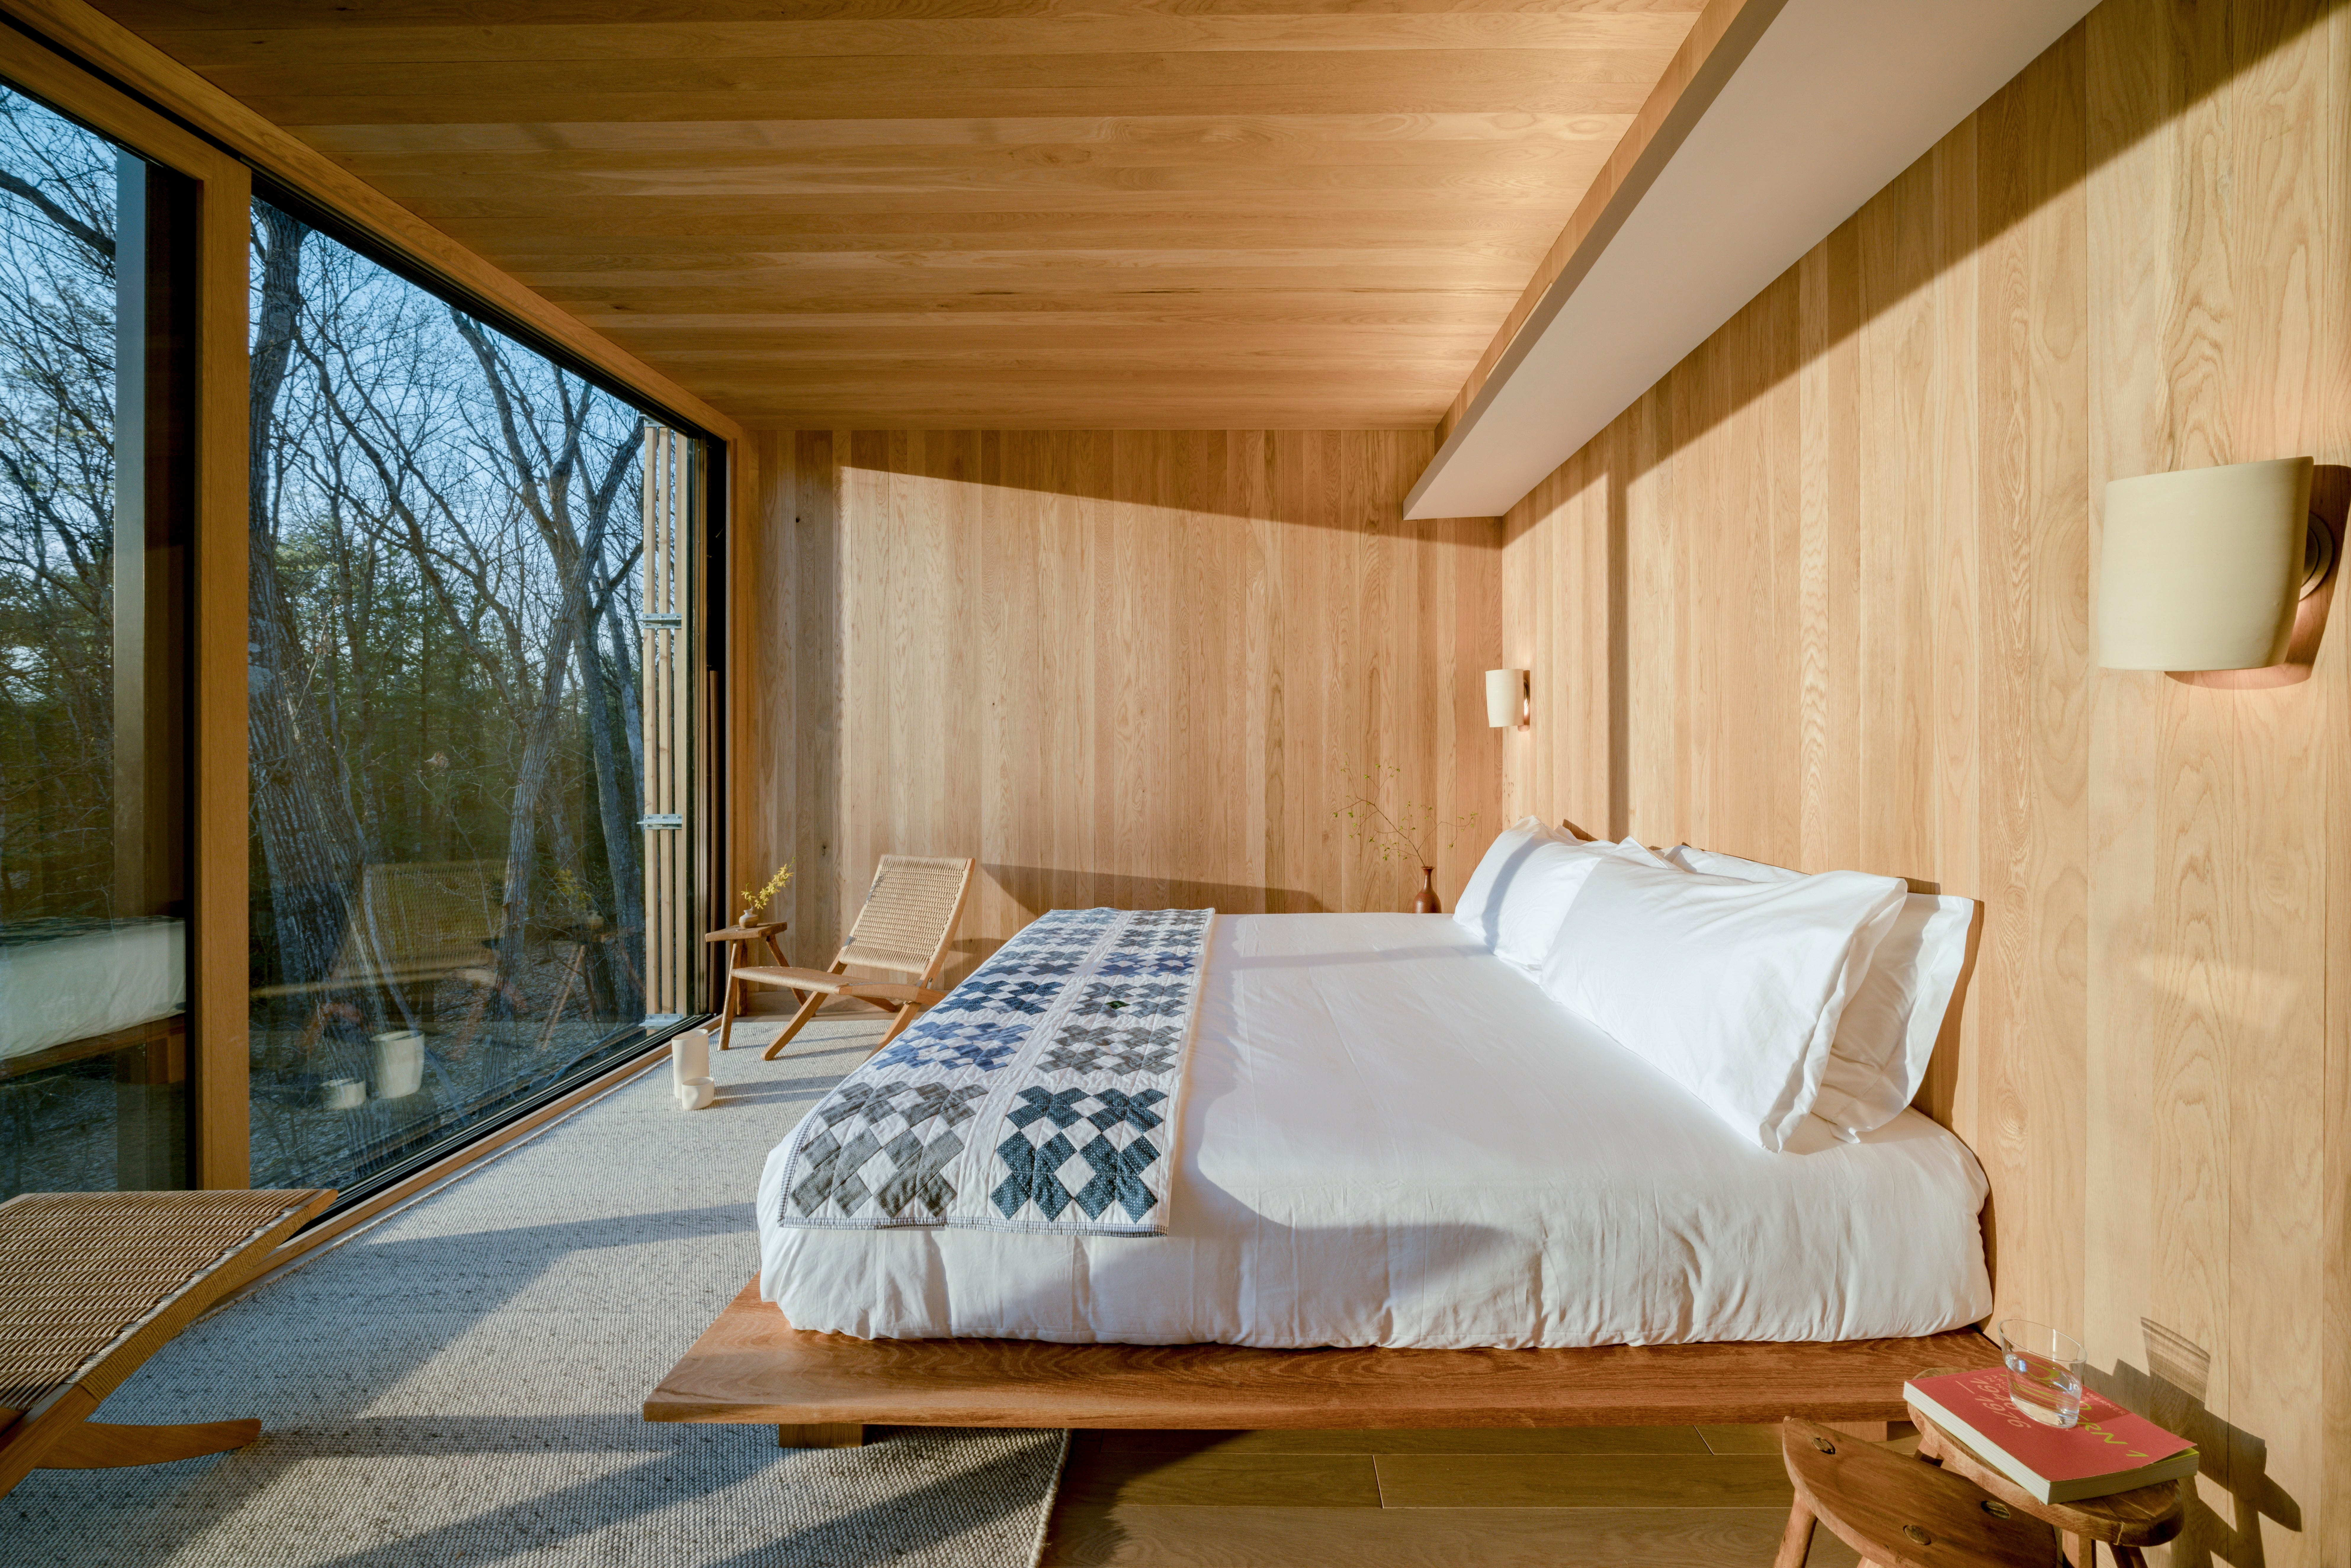 That cabin in the woods has just gone upscale: Southeast New York retreats to check out